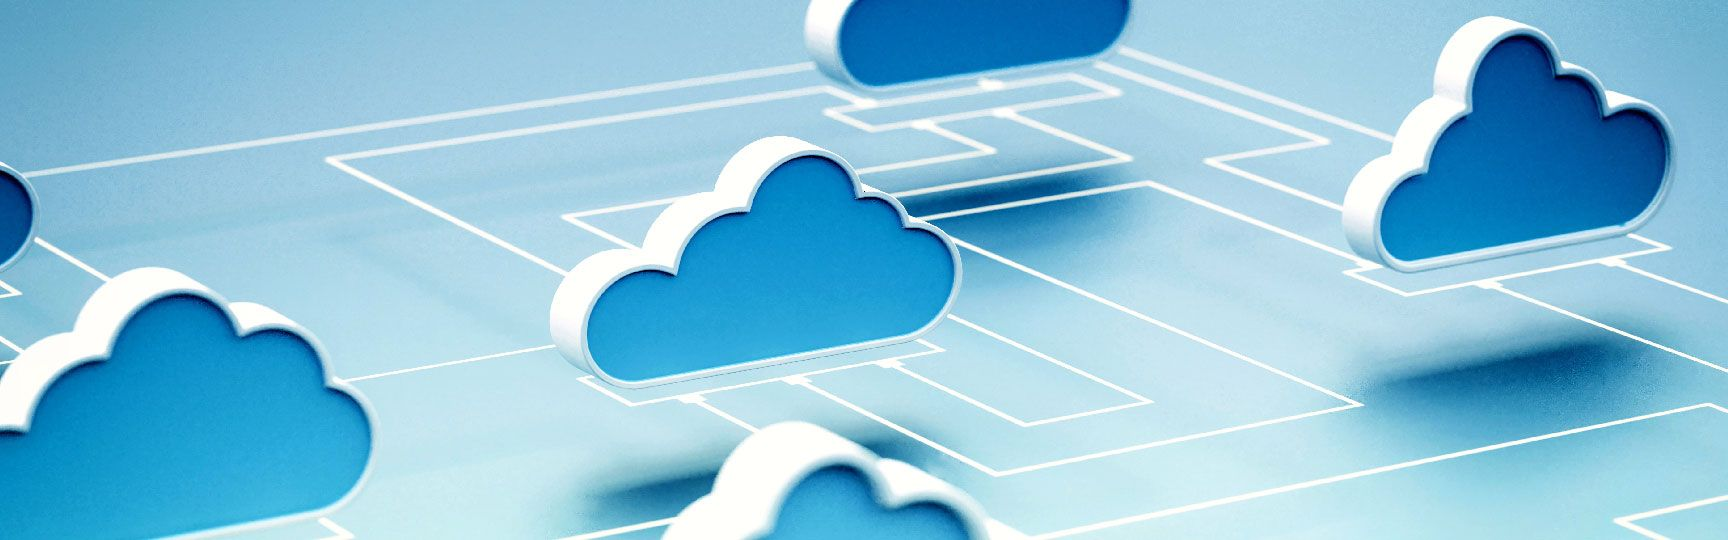 5 Essential Cloud Systems For Small Business